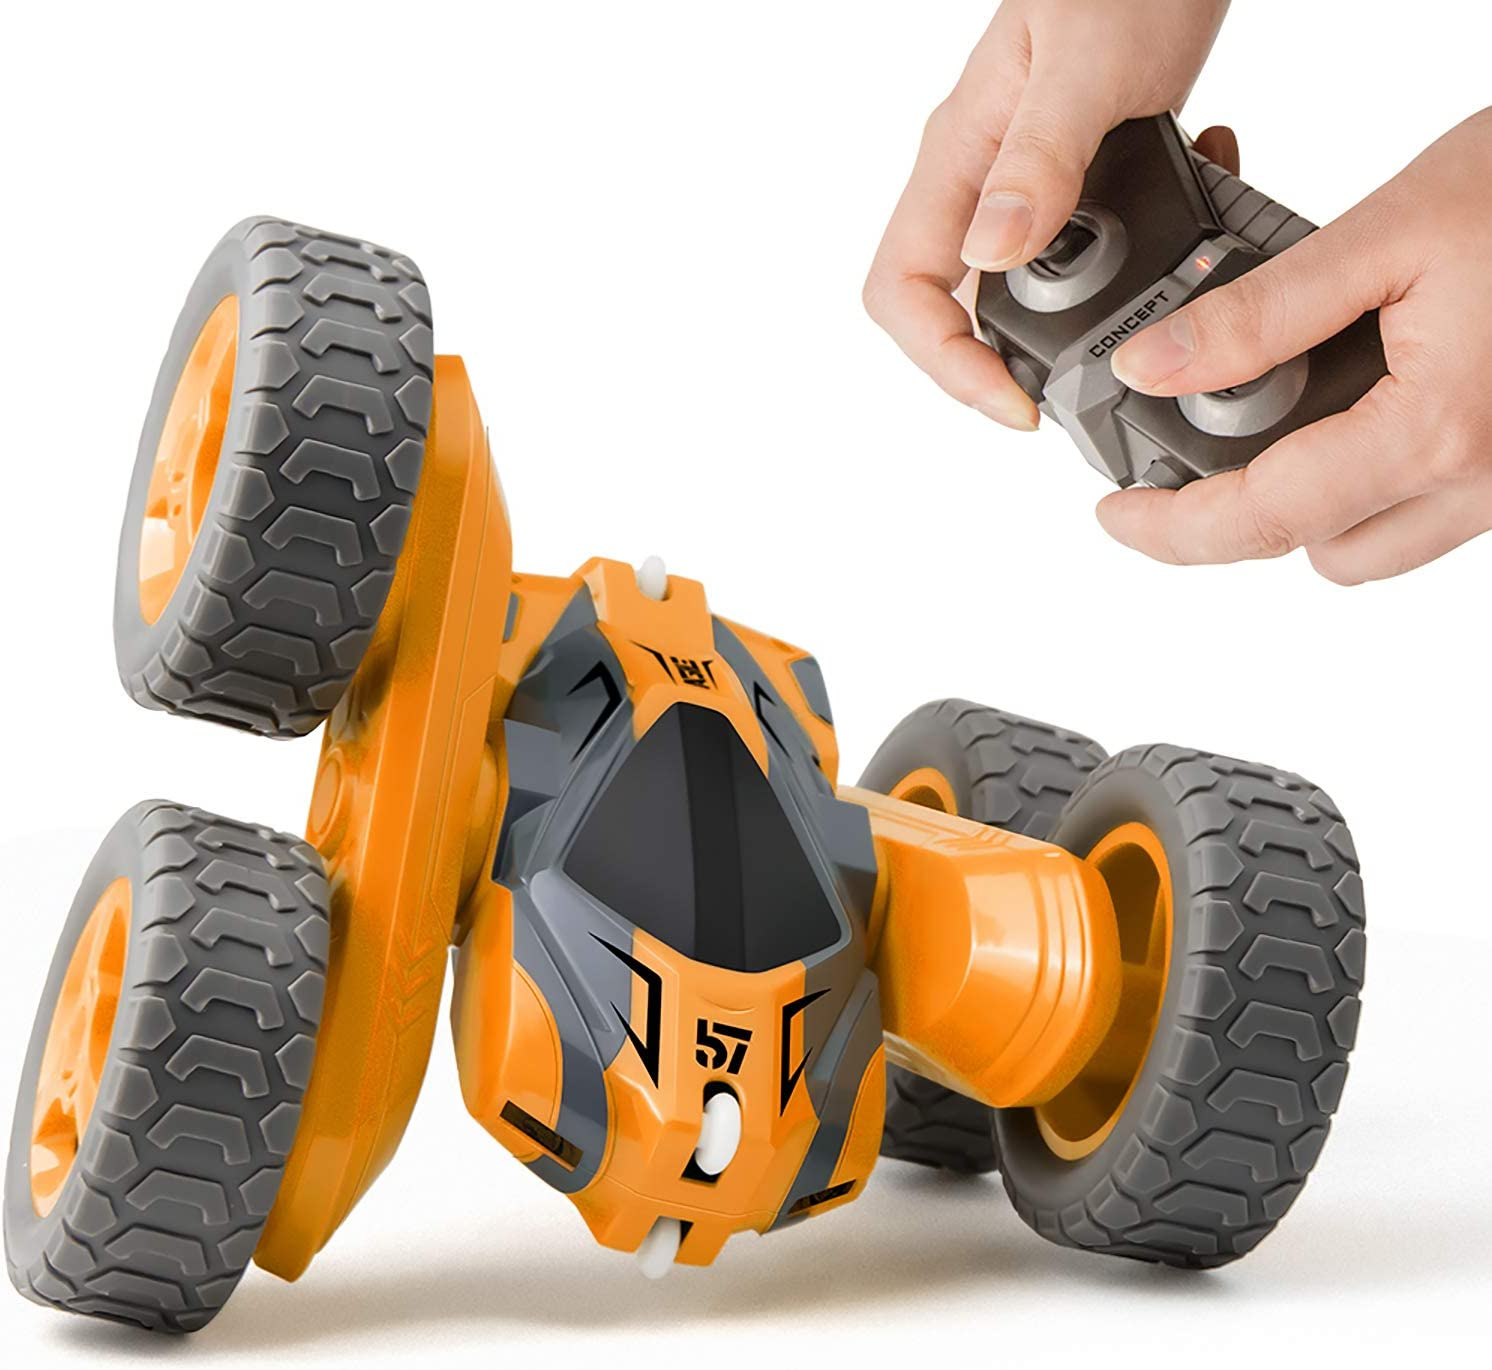 Tecnock Remote Control Car for Kids,360 ° Rotating Double Sided Flip RC Stunt Car,2.4Ghz 4WD Toy Car with Rechargeable Battery for 45 Min Play,Great Gifts for Boys and Girls(Orange): Toys & Games